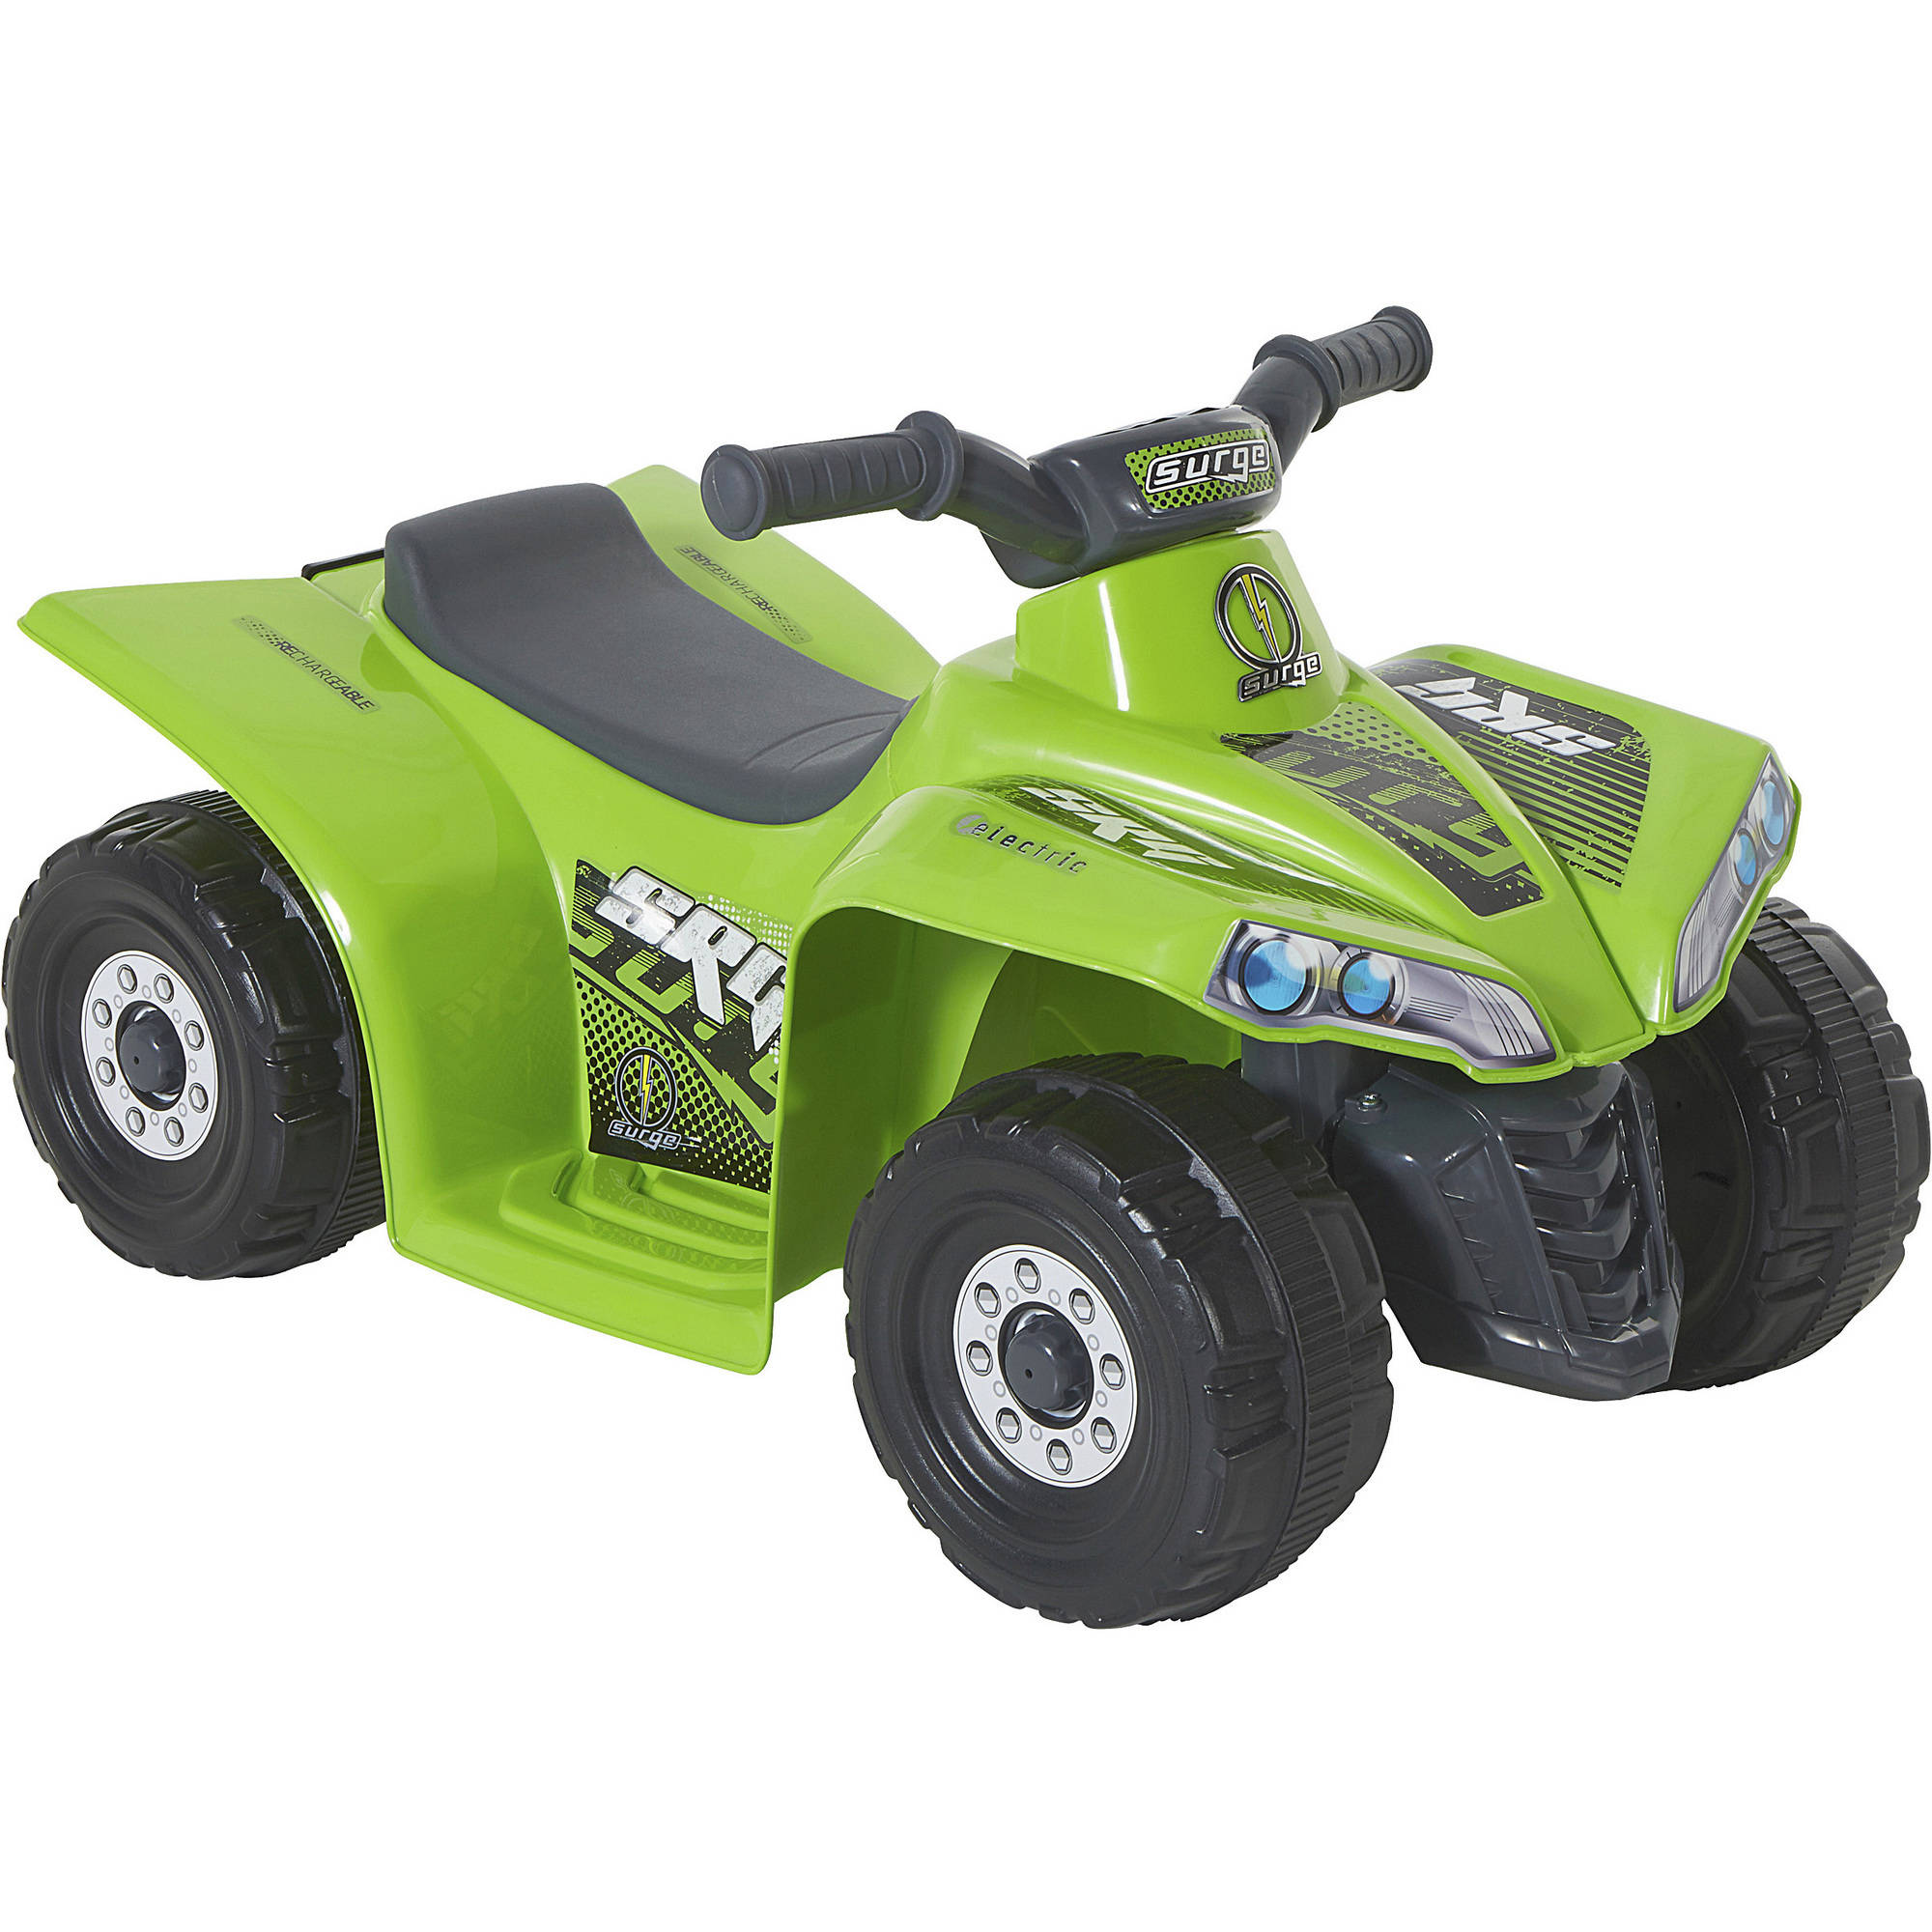 Surge Quad Boys' 6-Volt Battery-Powered Ride-On, Green